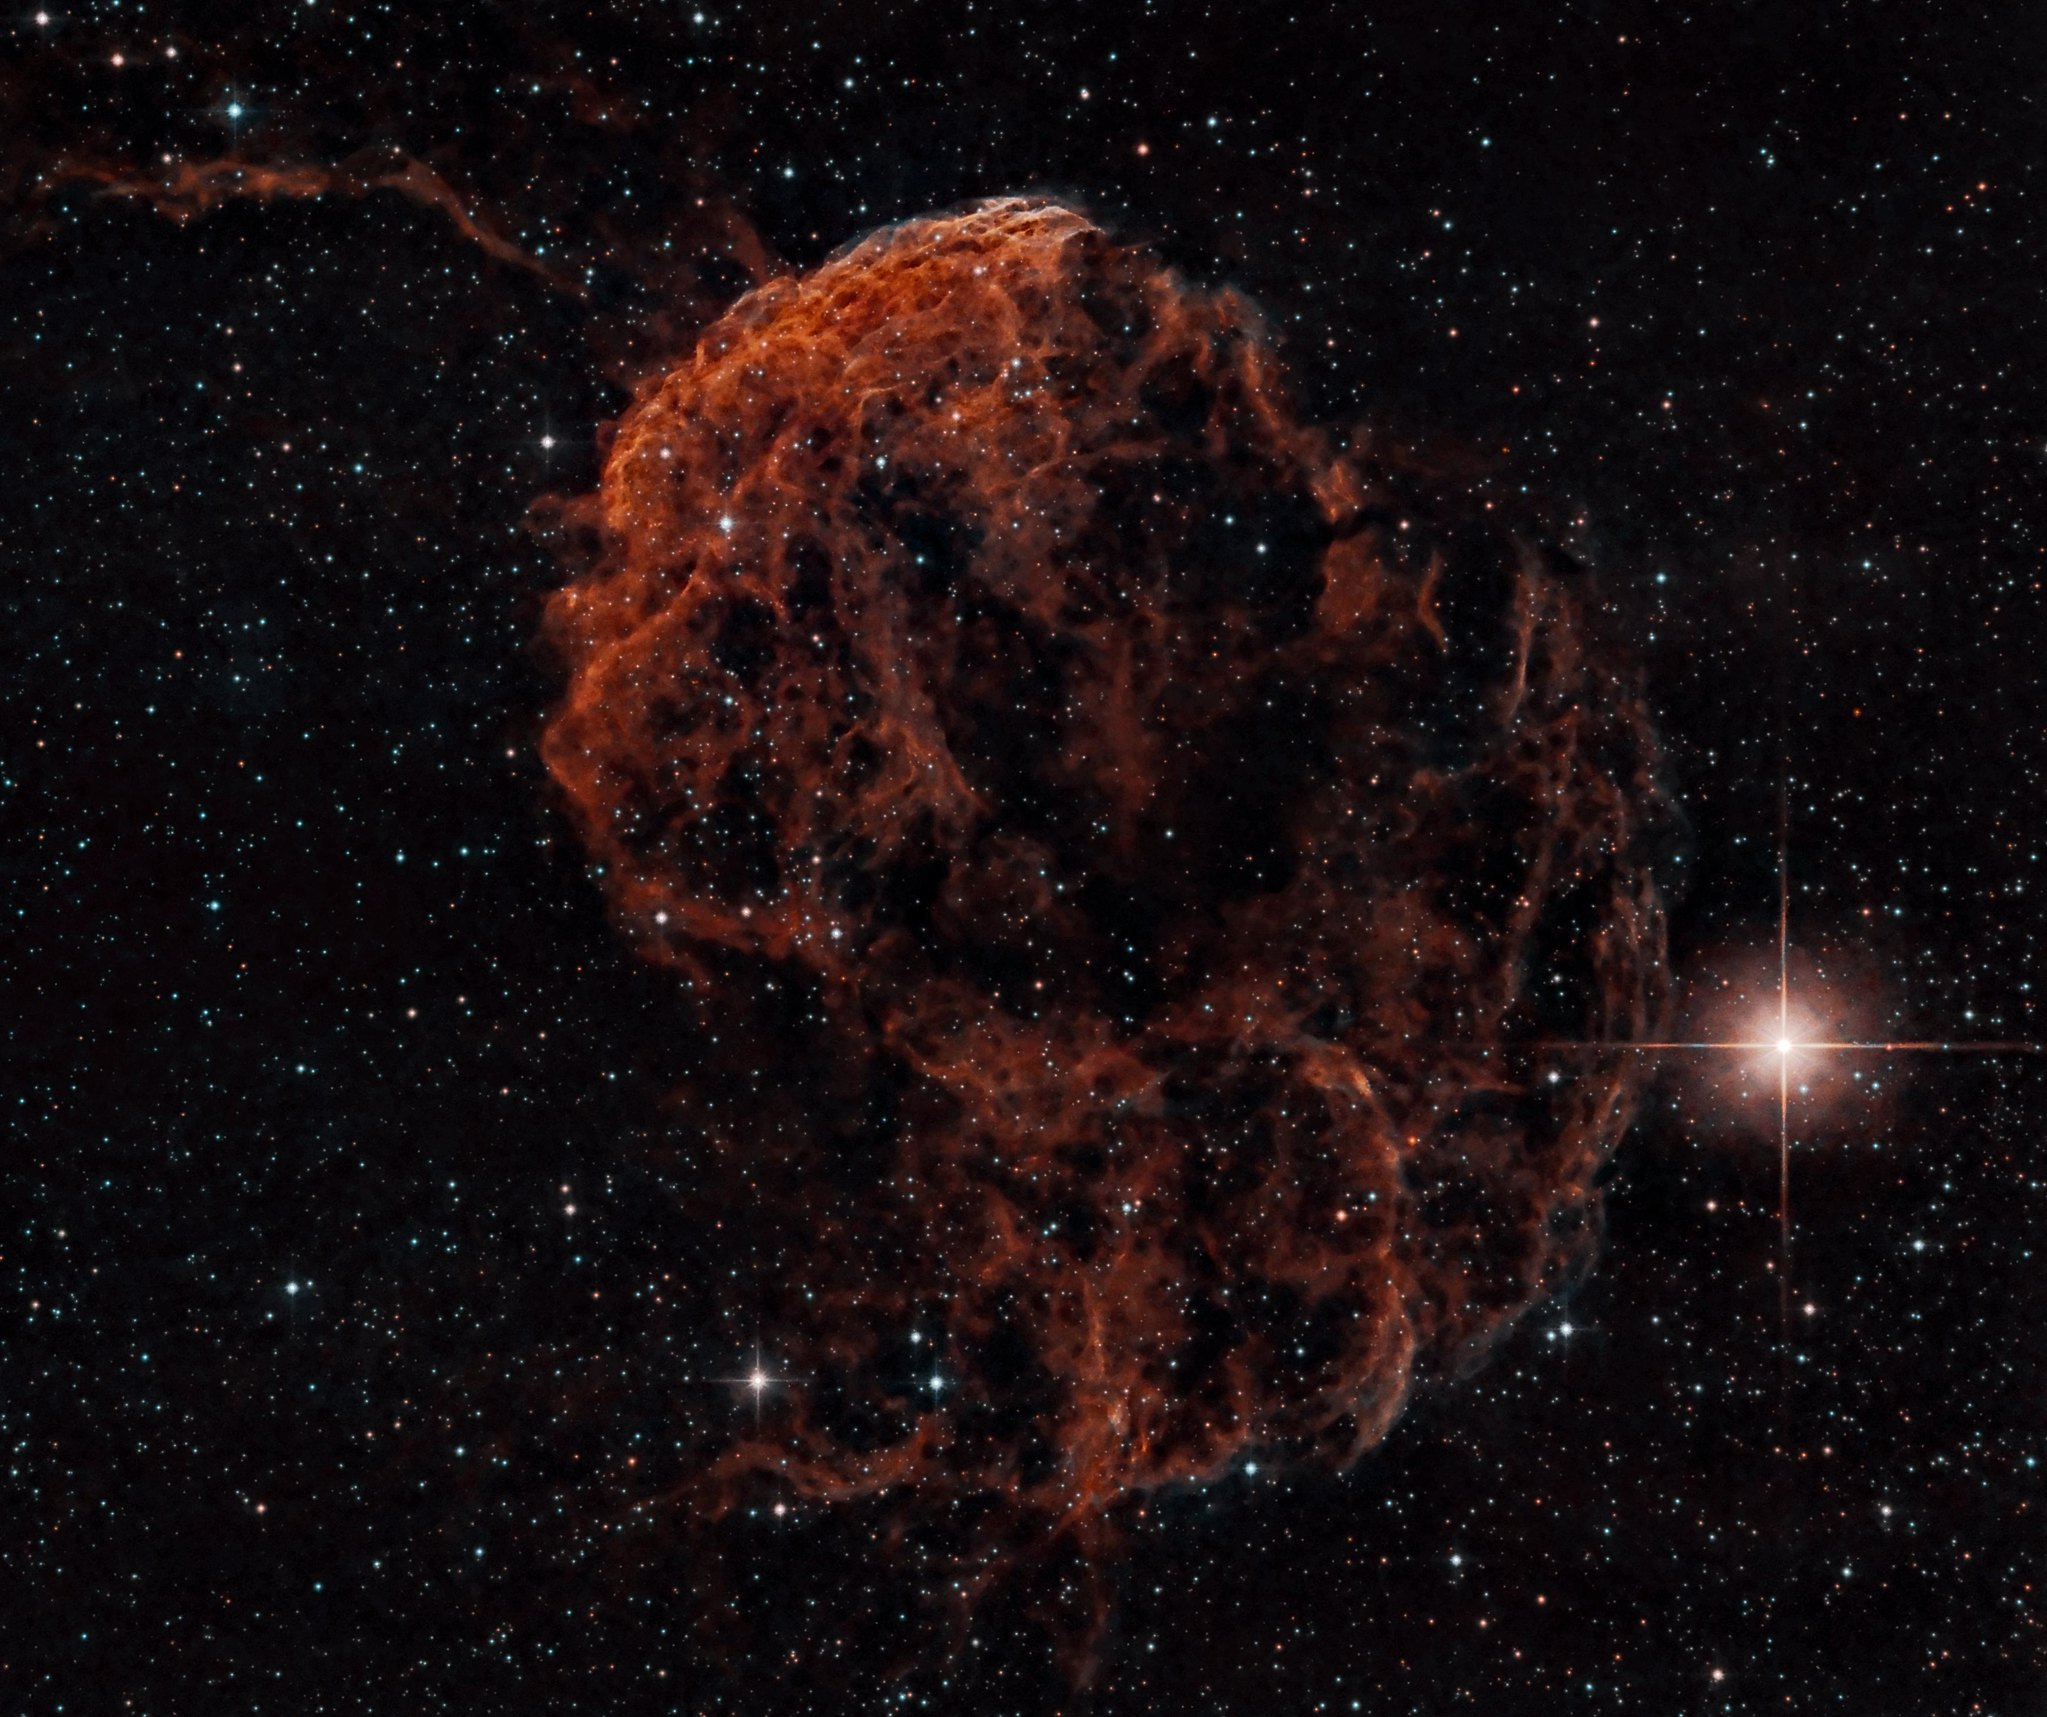 IC 443 Jellyfish Nebula Narrowband